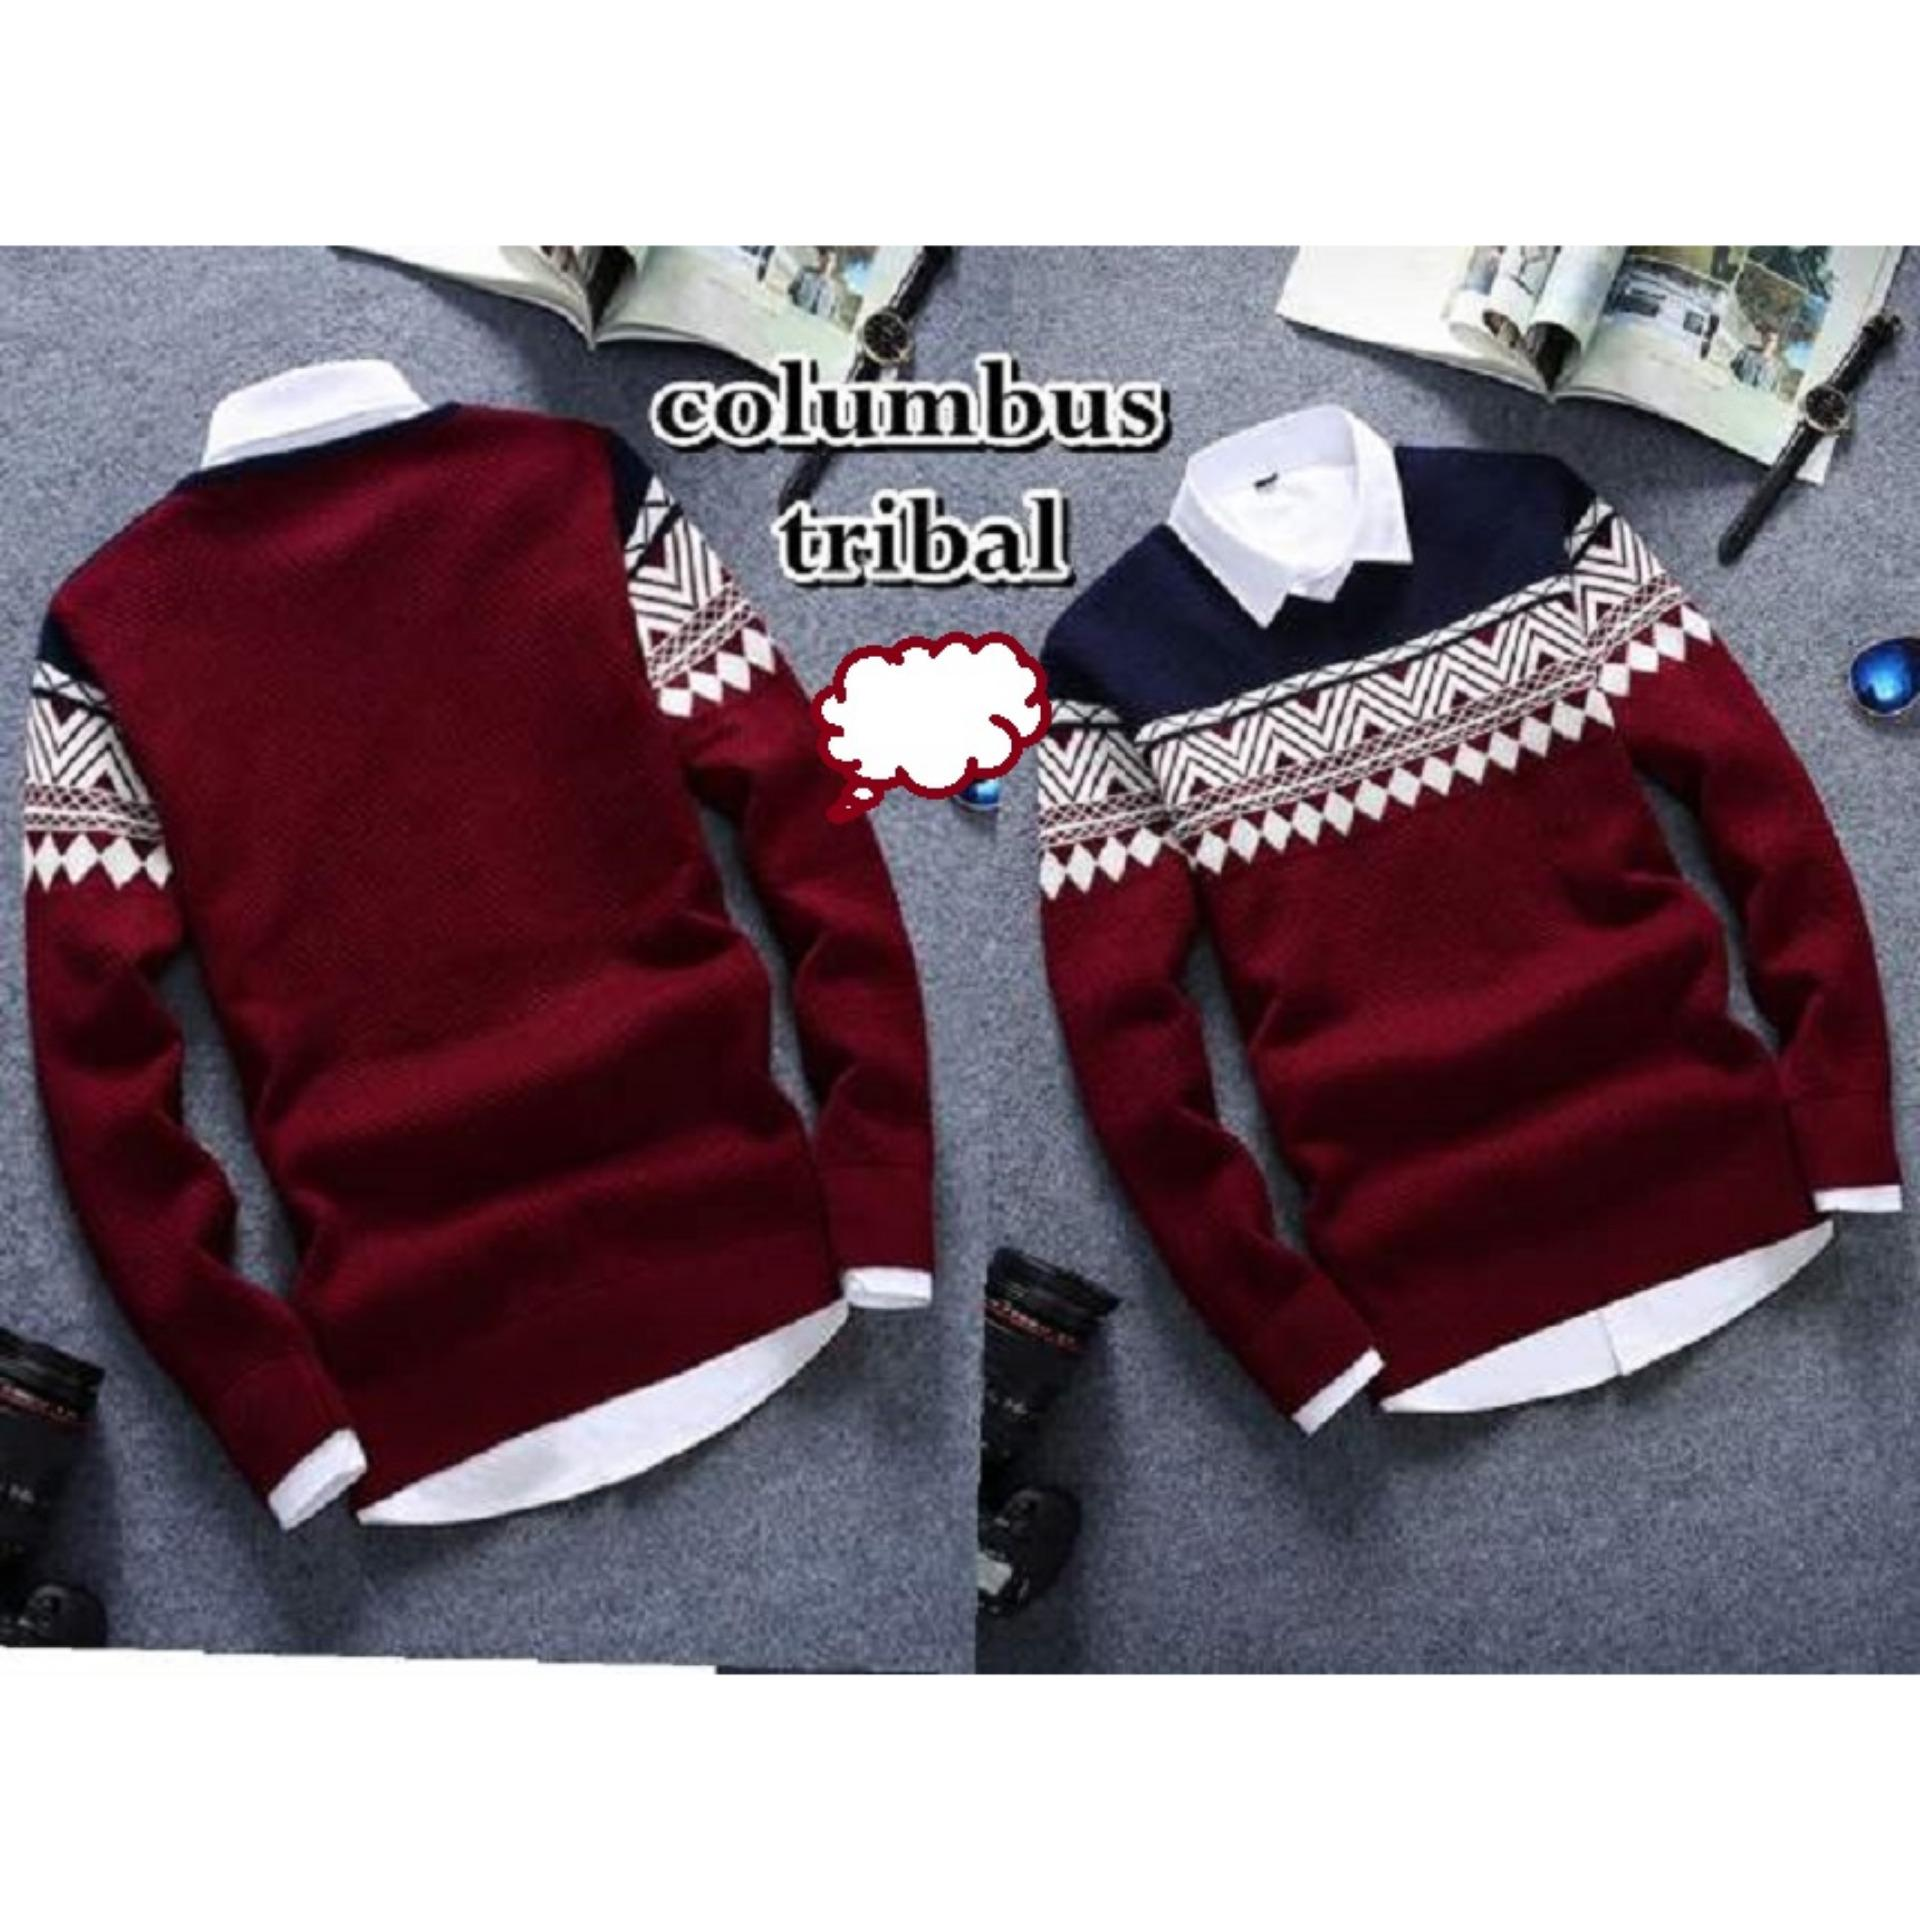 Sweater Pria Columbus Tribal Good Quality - Maroon